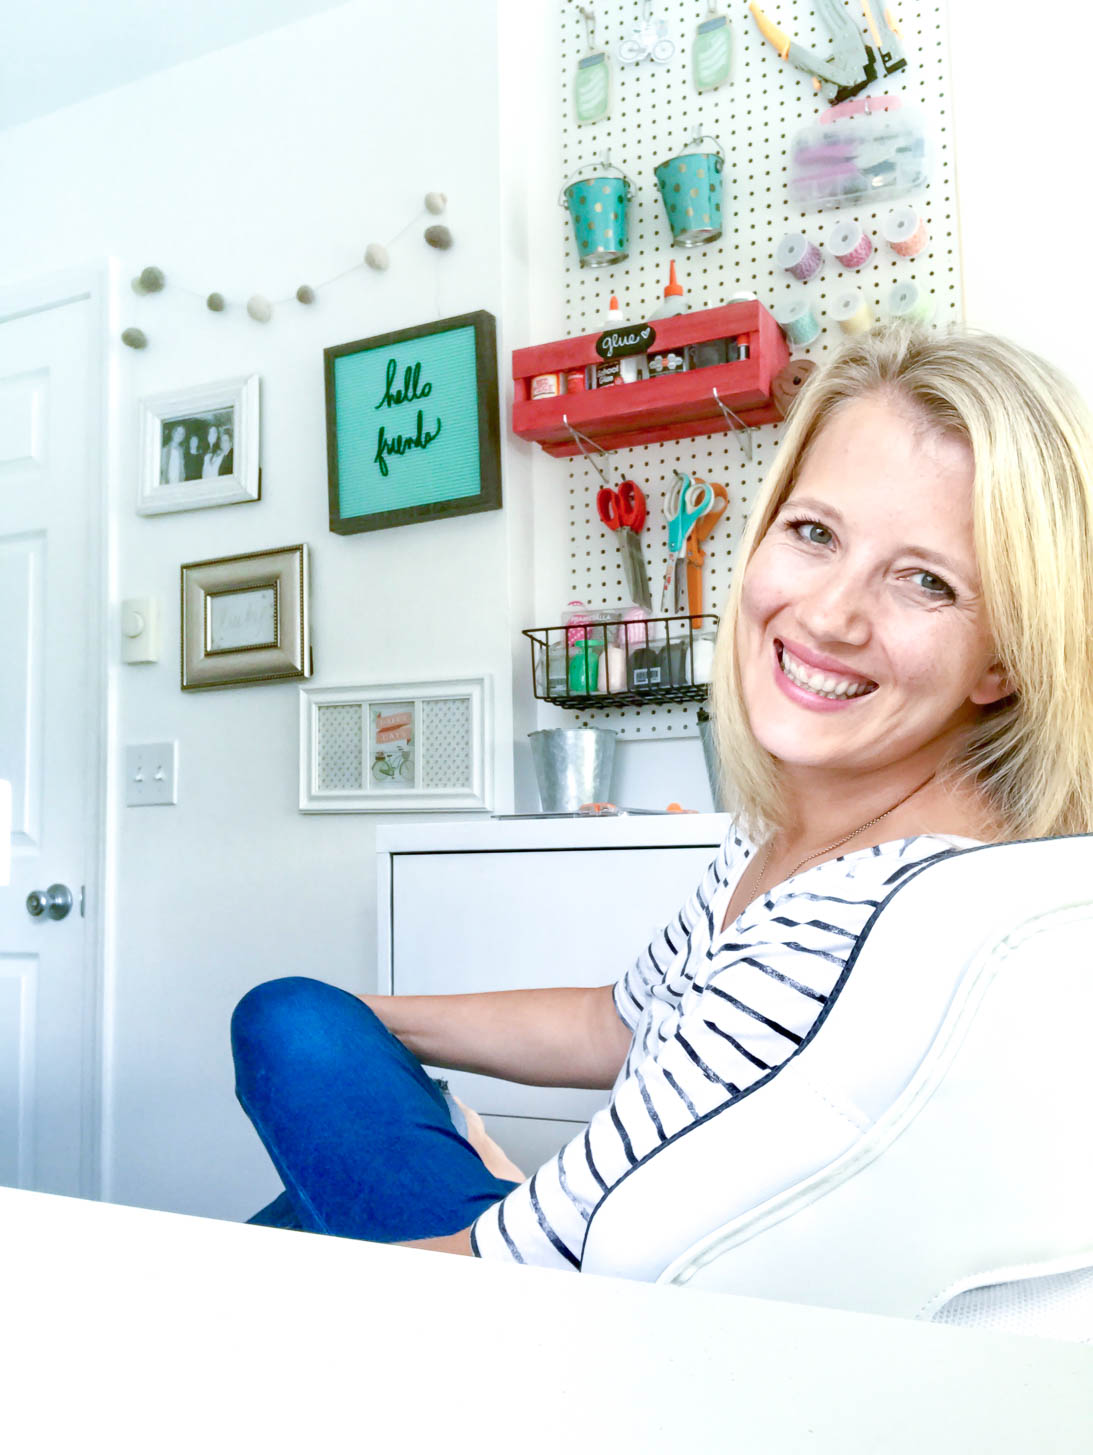 Tiffany Hewlett Making the World Cuter in her Organized White Craft Room